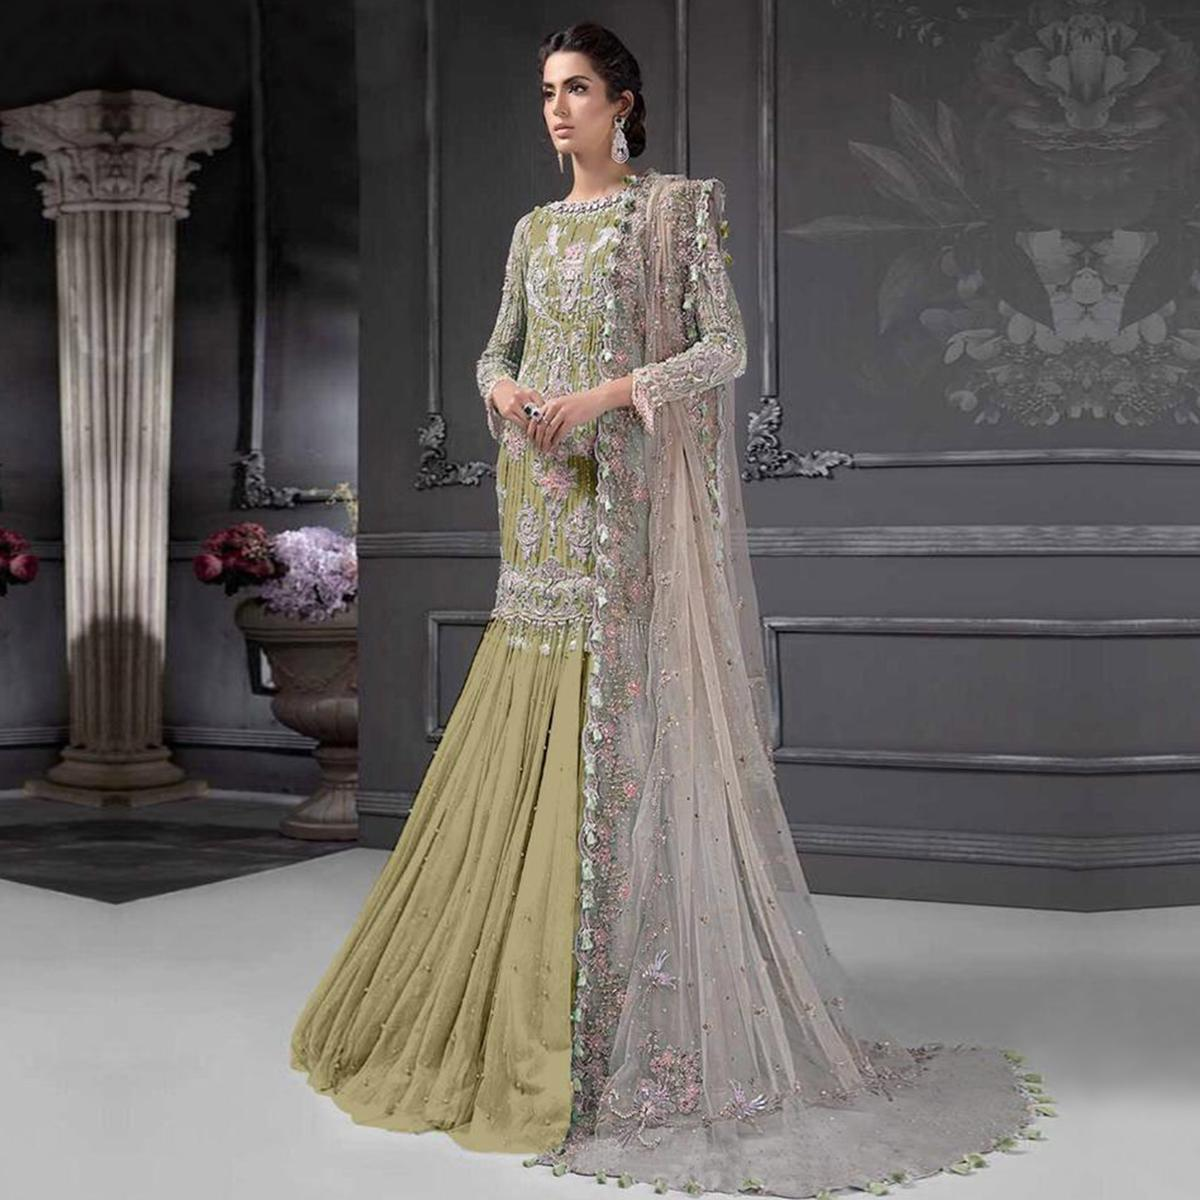 Groovy Olive Green Colored Partywear Embroidered Netted Lehenga Kameez